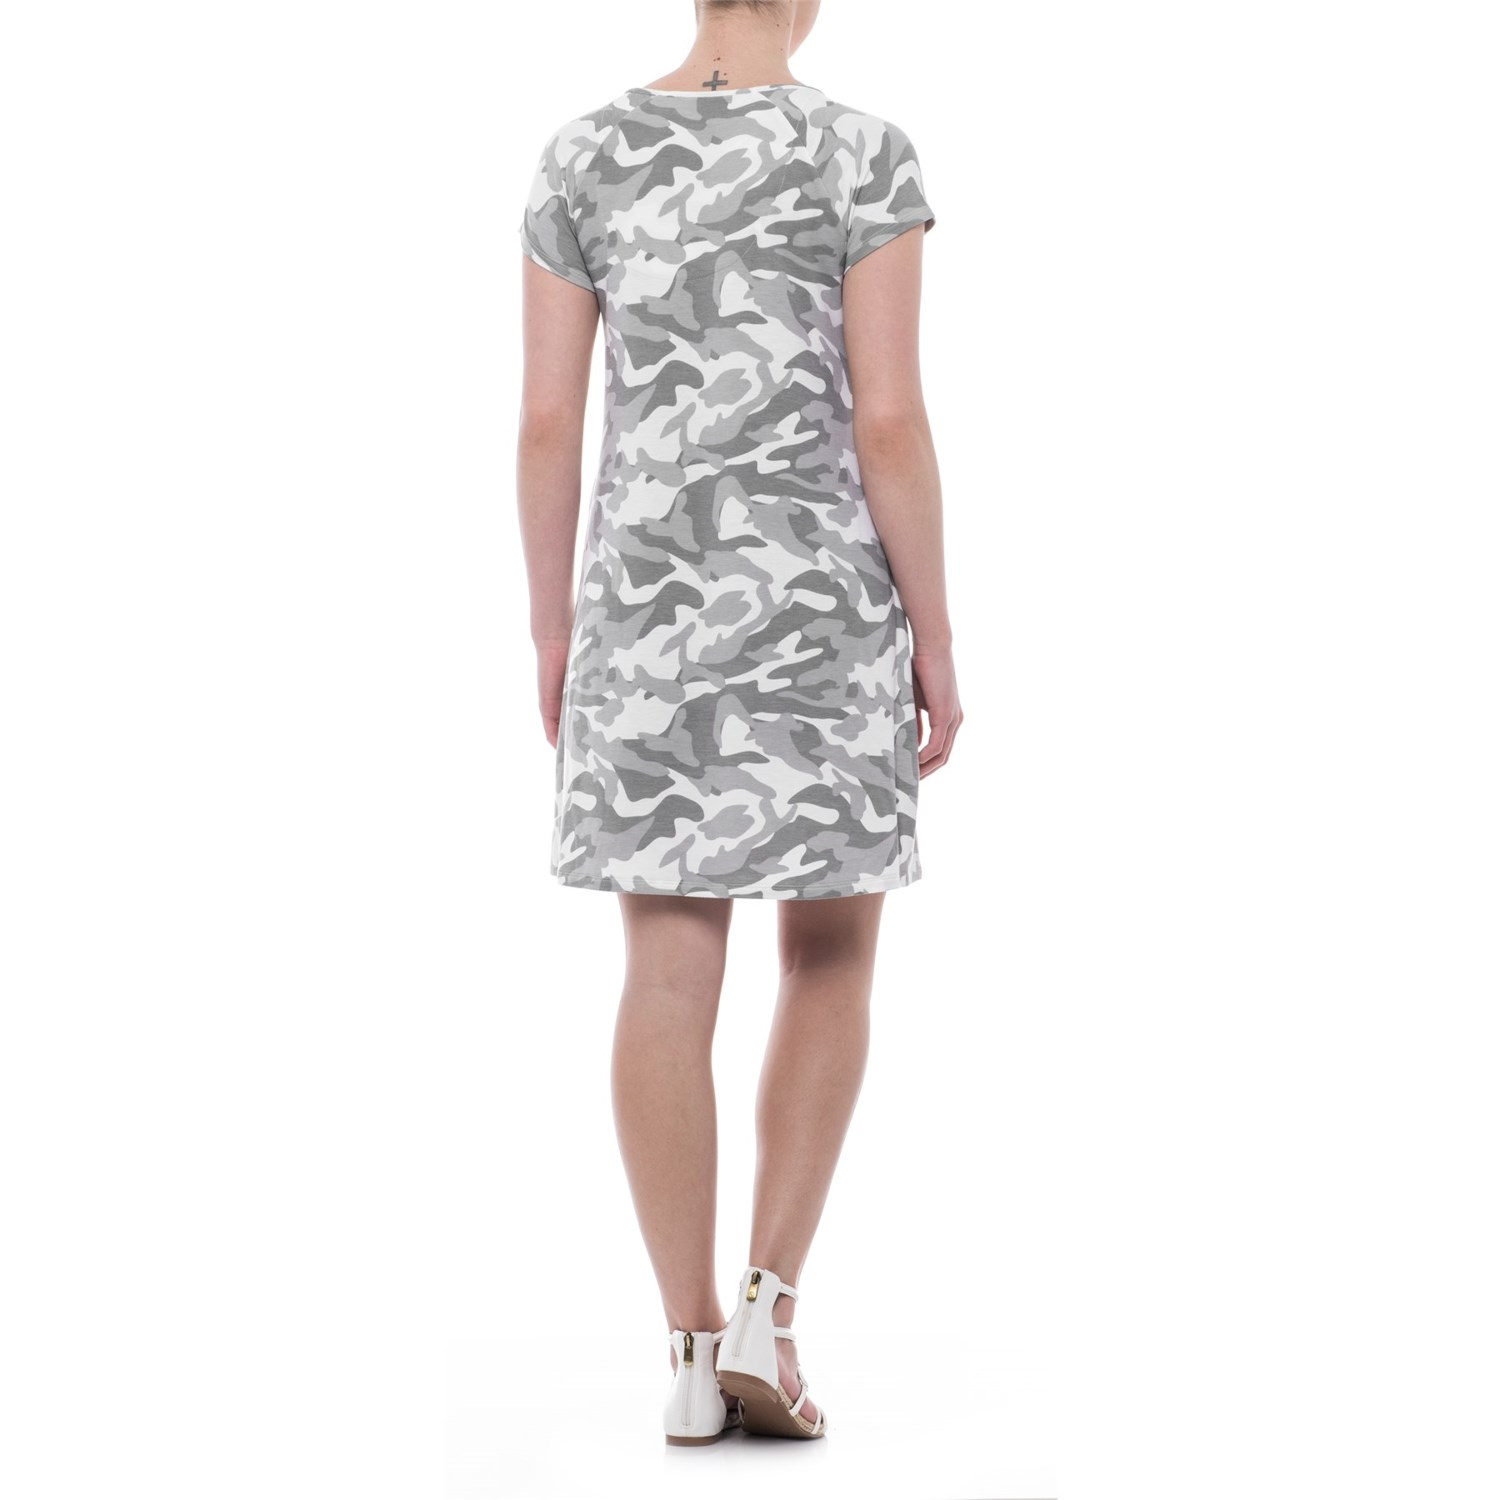 CG Cable & Gauge Swing Dress (For Women) - Save 62%